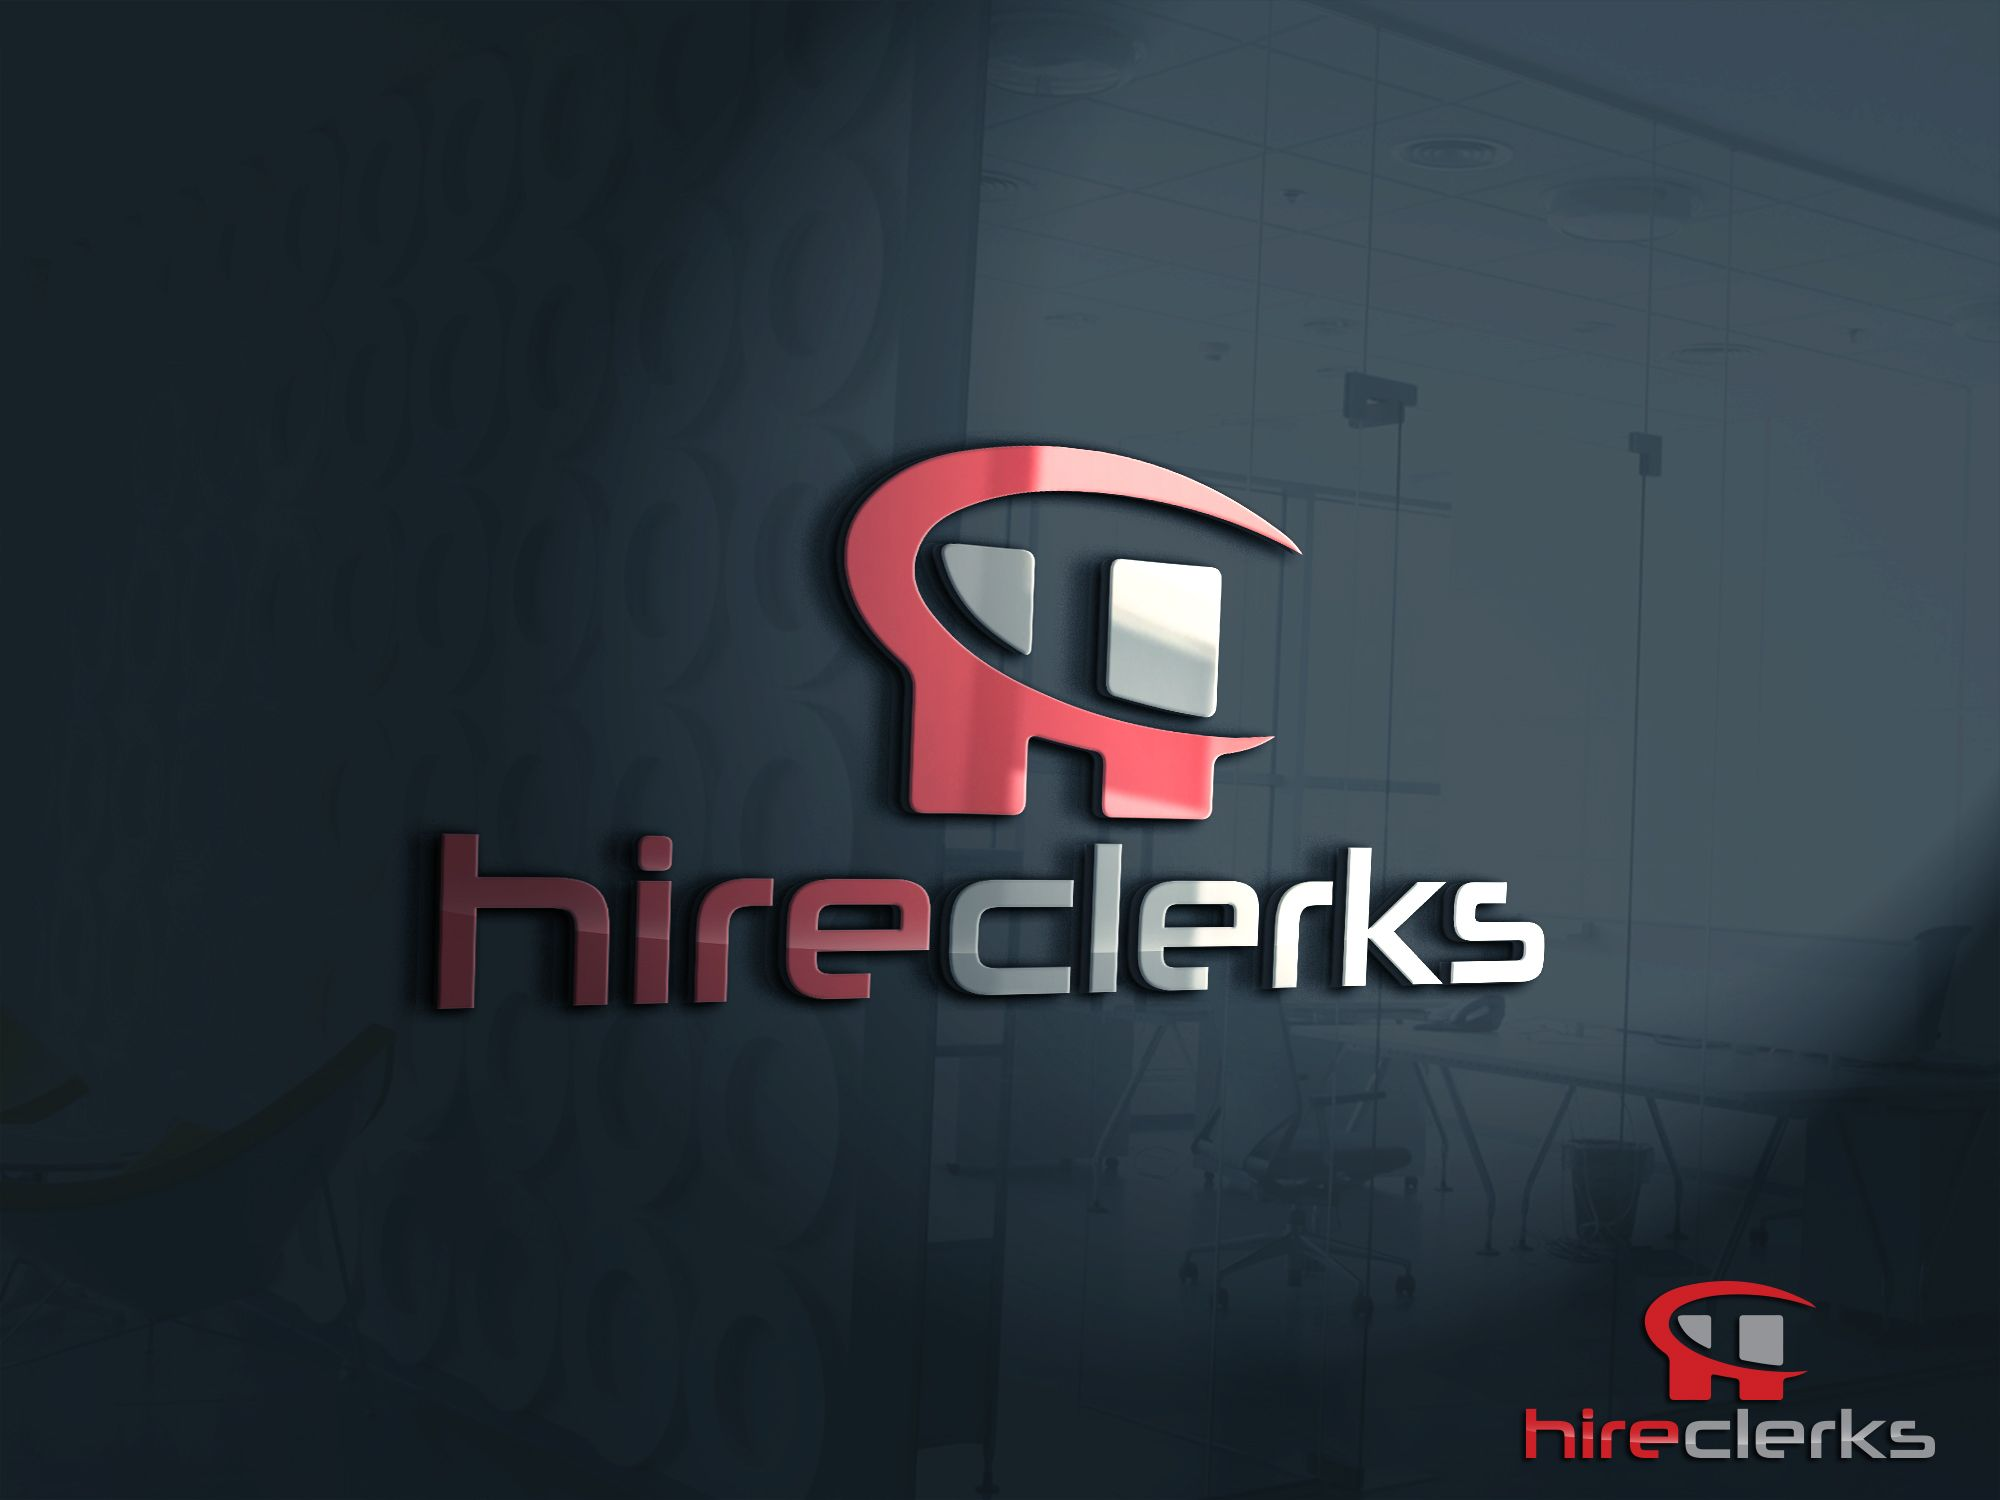 SEO Marketplace And Digital Marketing Services - Hire Clerks